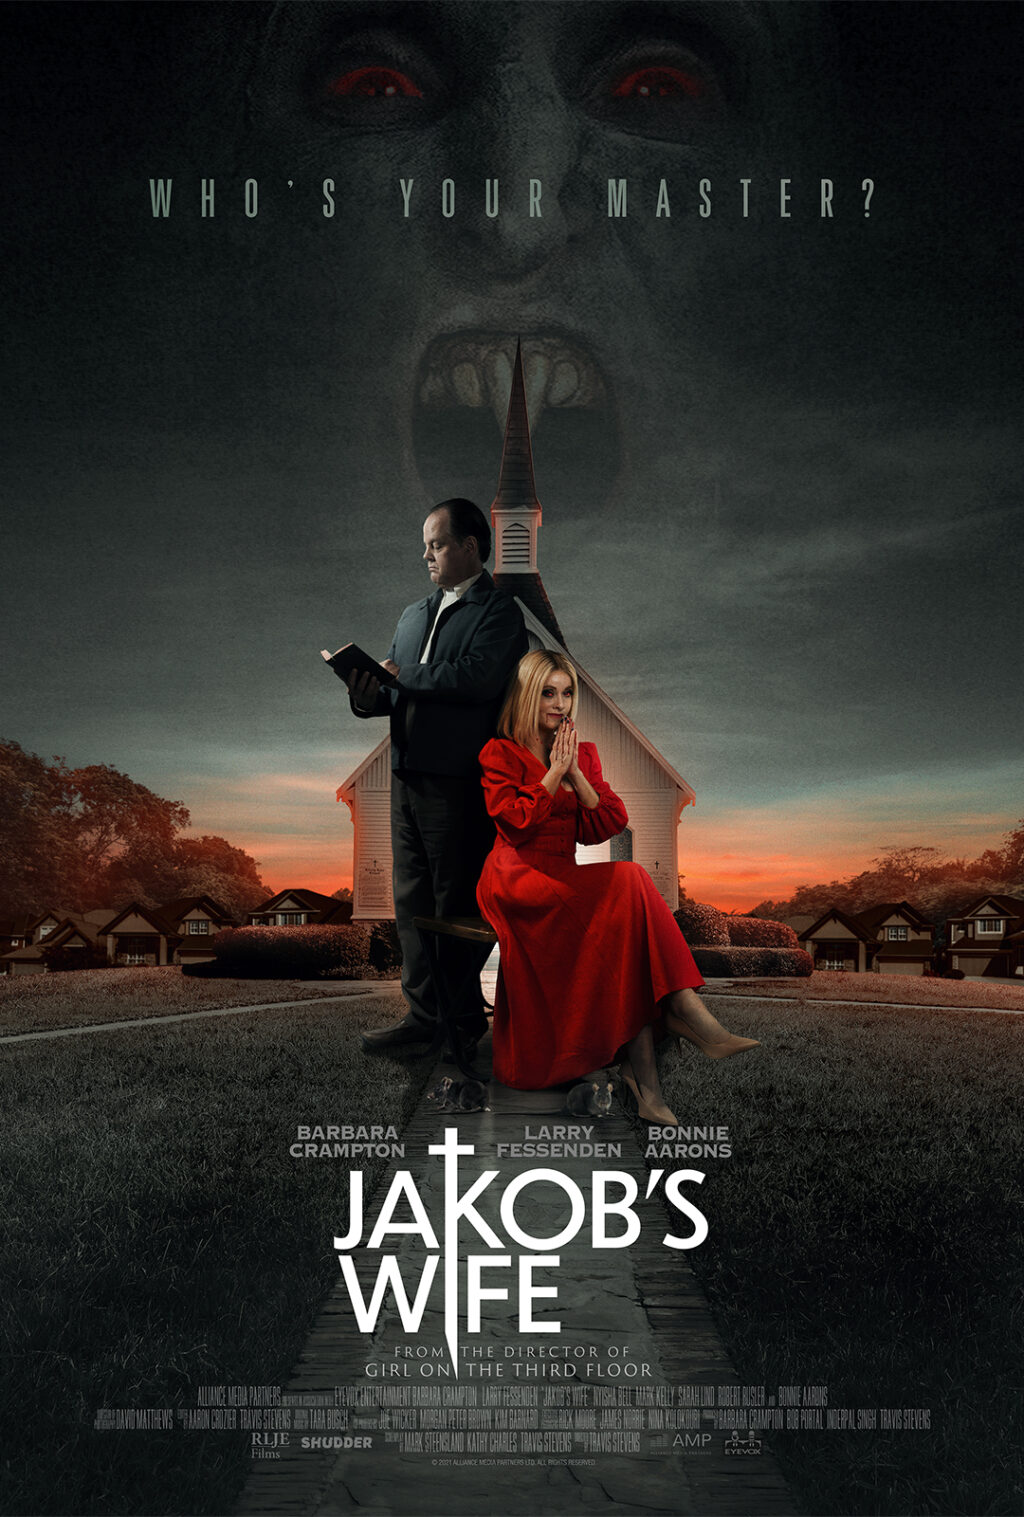 JAKOB'S WIFE Now Set to Arrive on Shudder August 19th